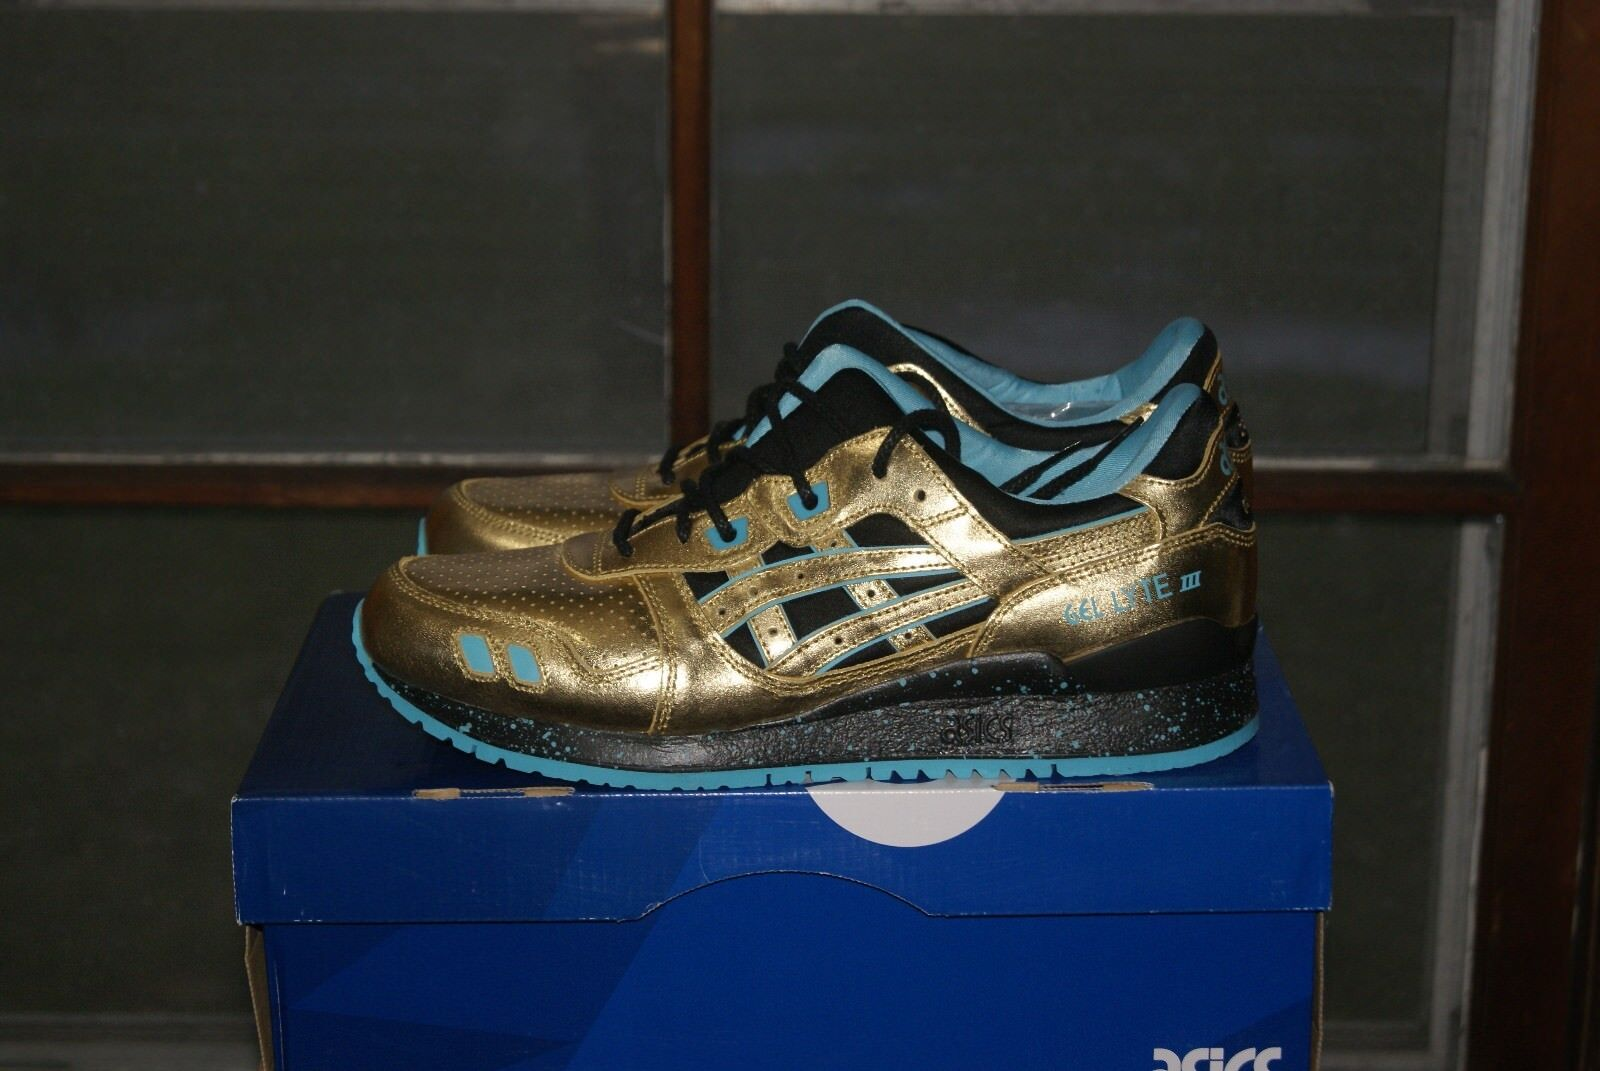 Mens iii Asics Gel Lyte iii Mens Gold Gold Sz 8 or 9 or 9.5 or 12 or 13 a2947c